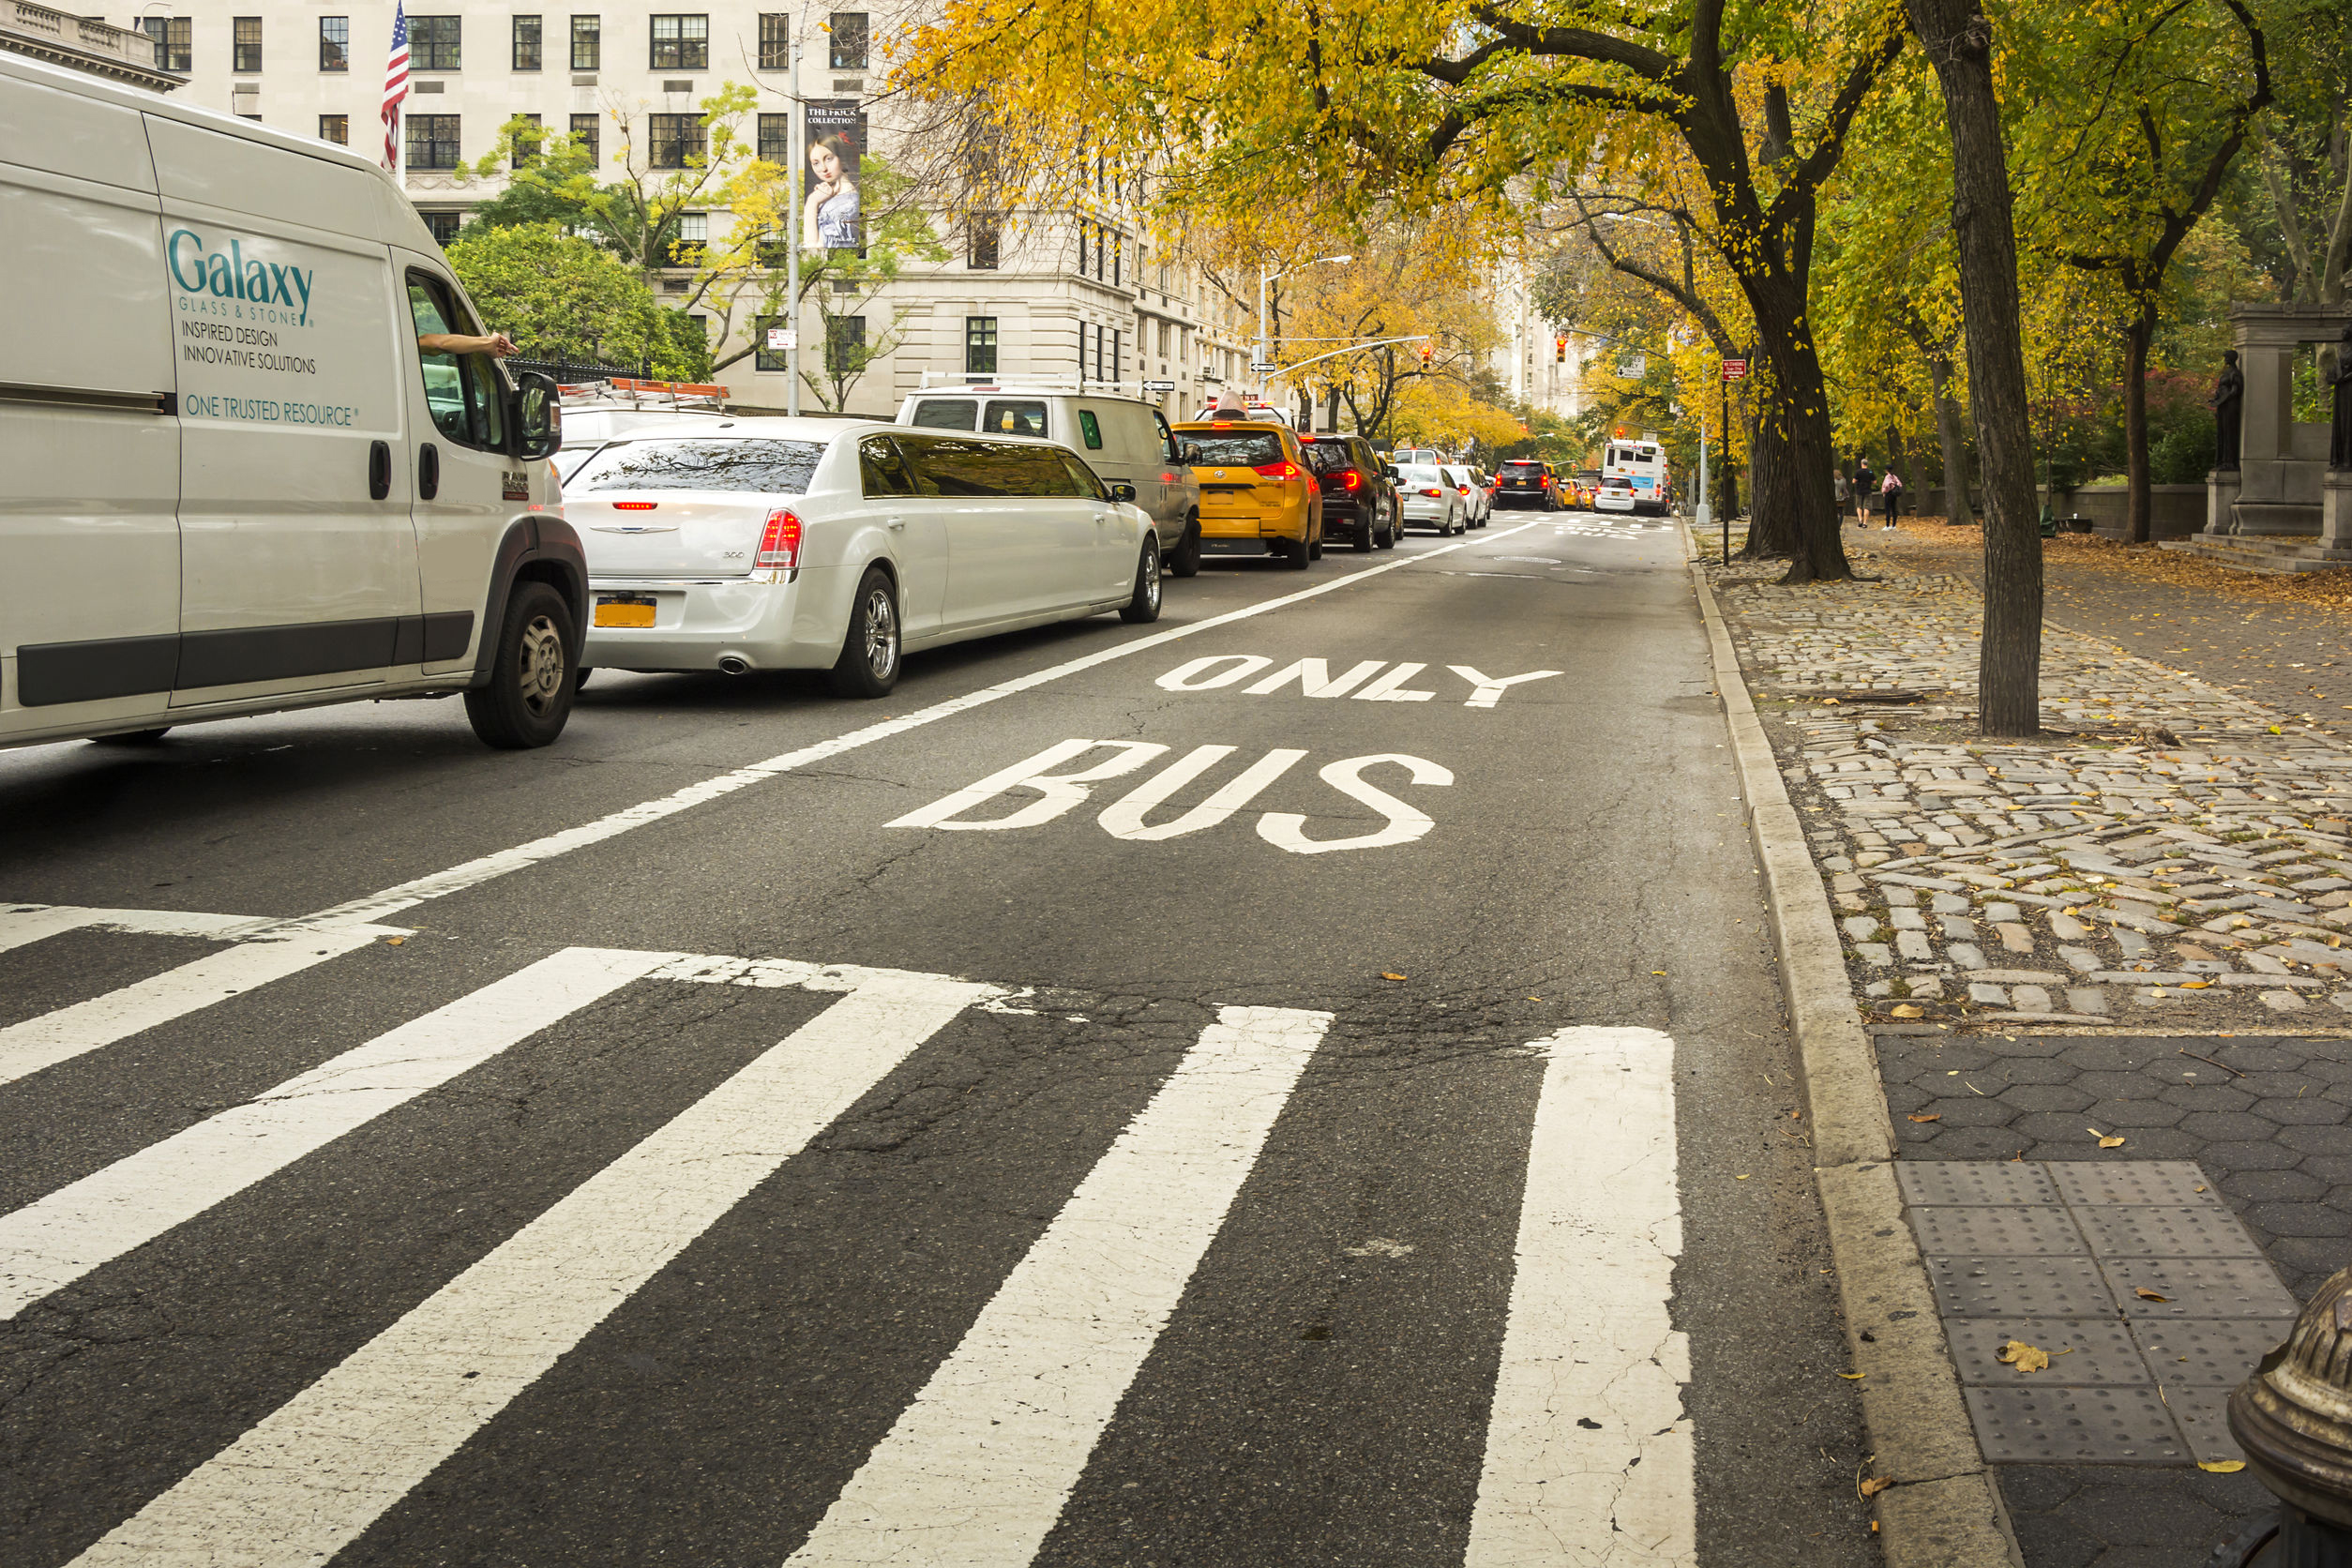 72722340 - new york, usa, november 2016: bus lane in new york near central park